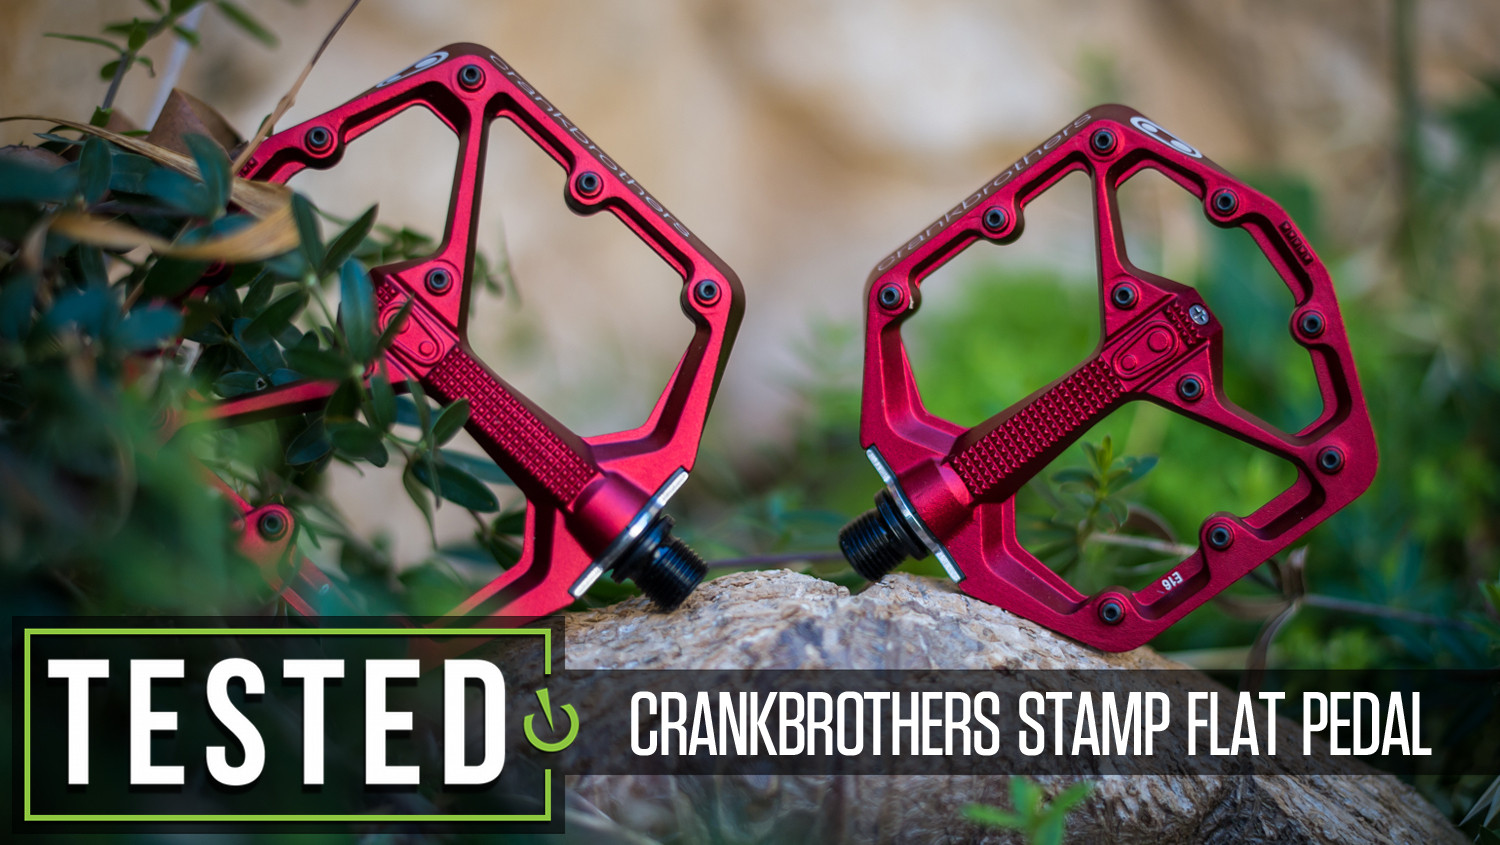 Crankbrothers Stamp 7 Flat Pedals